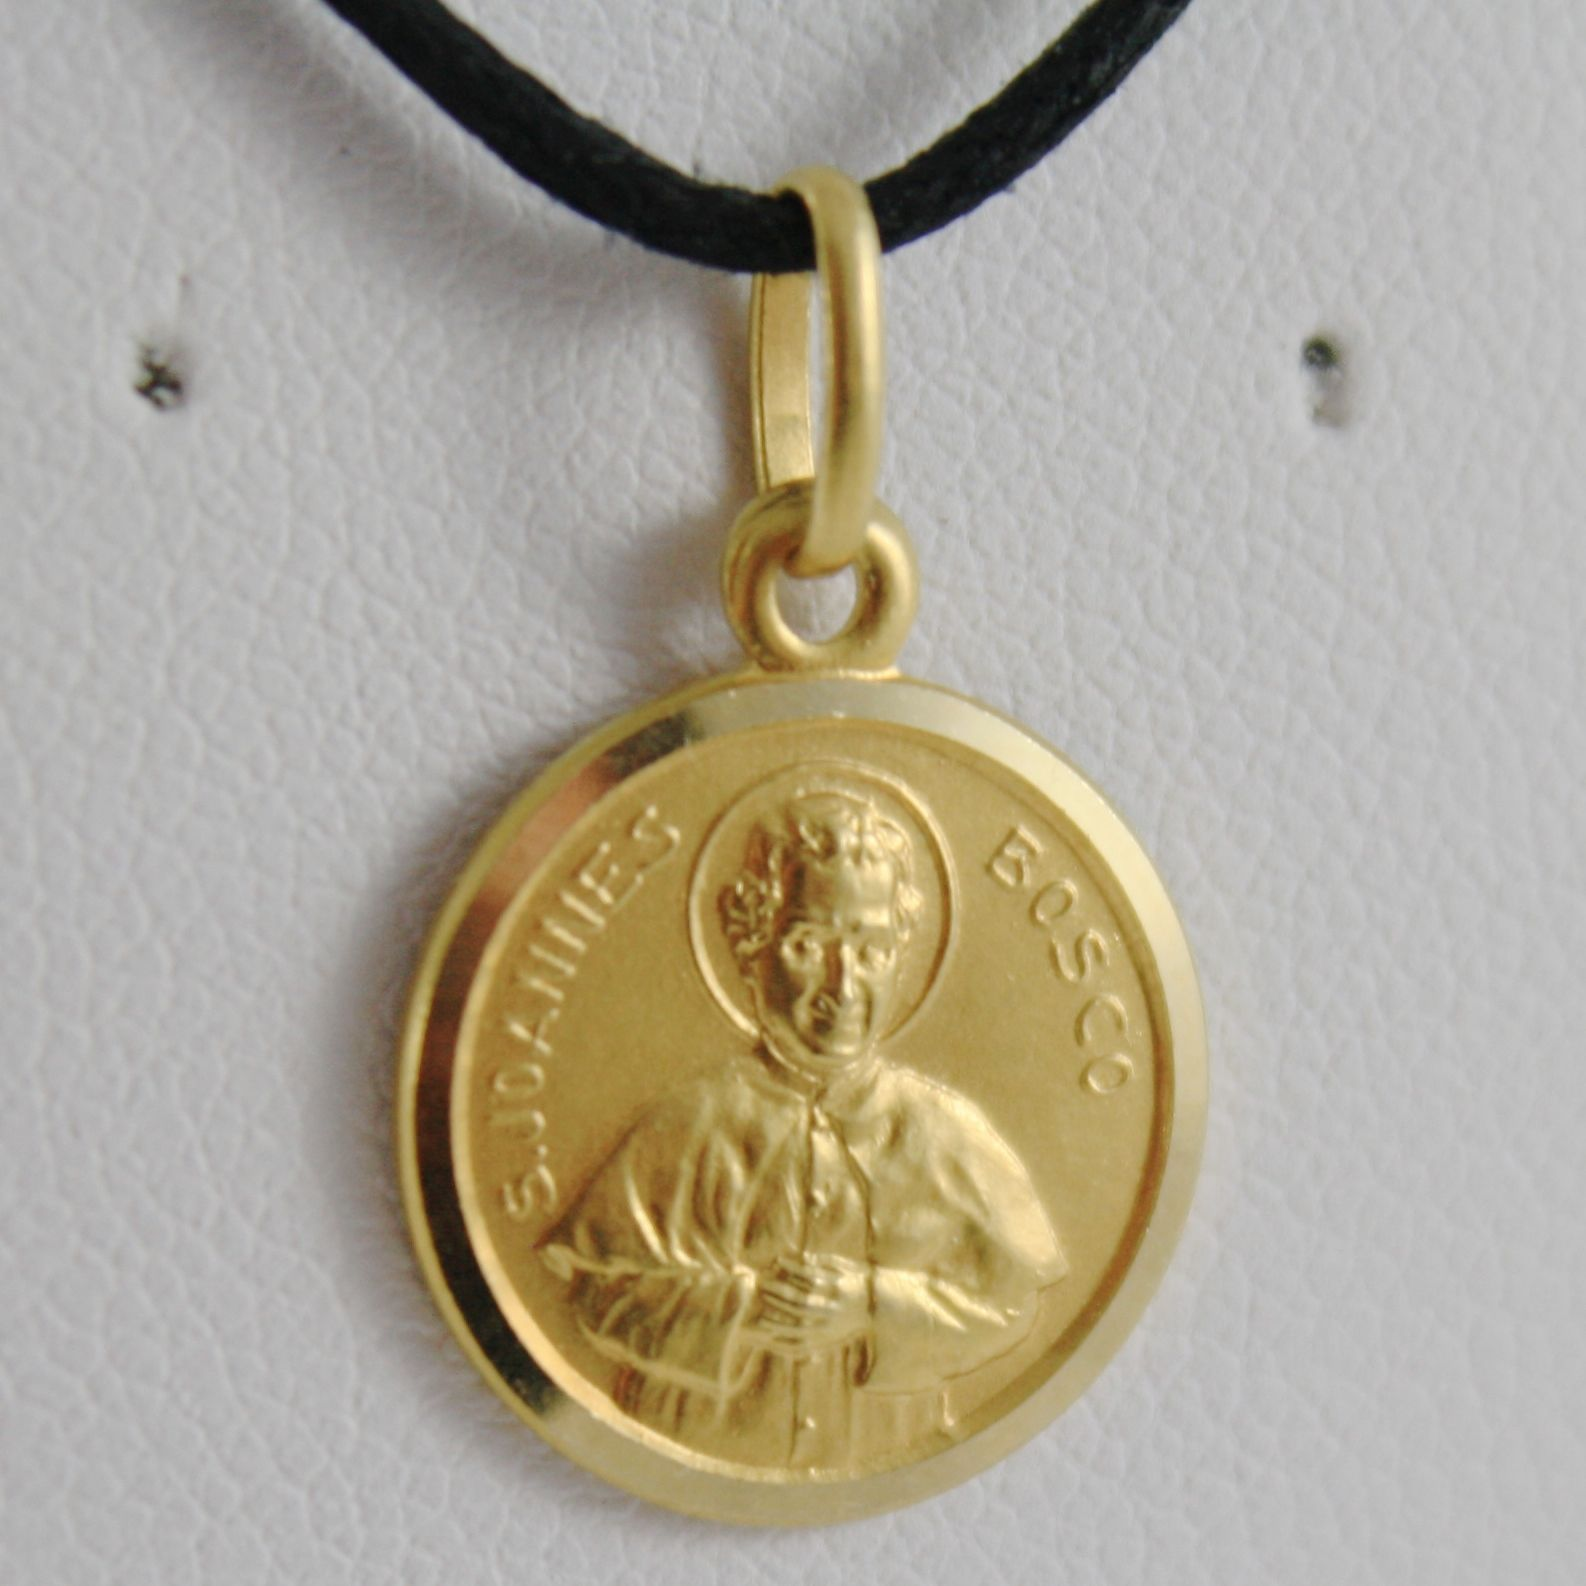 SOLID 18K YELLOW GOLD ST SAINT JOANNES GIOVANNI BOSCO 13 MM MEDAL, MADE IN ITALY